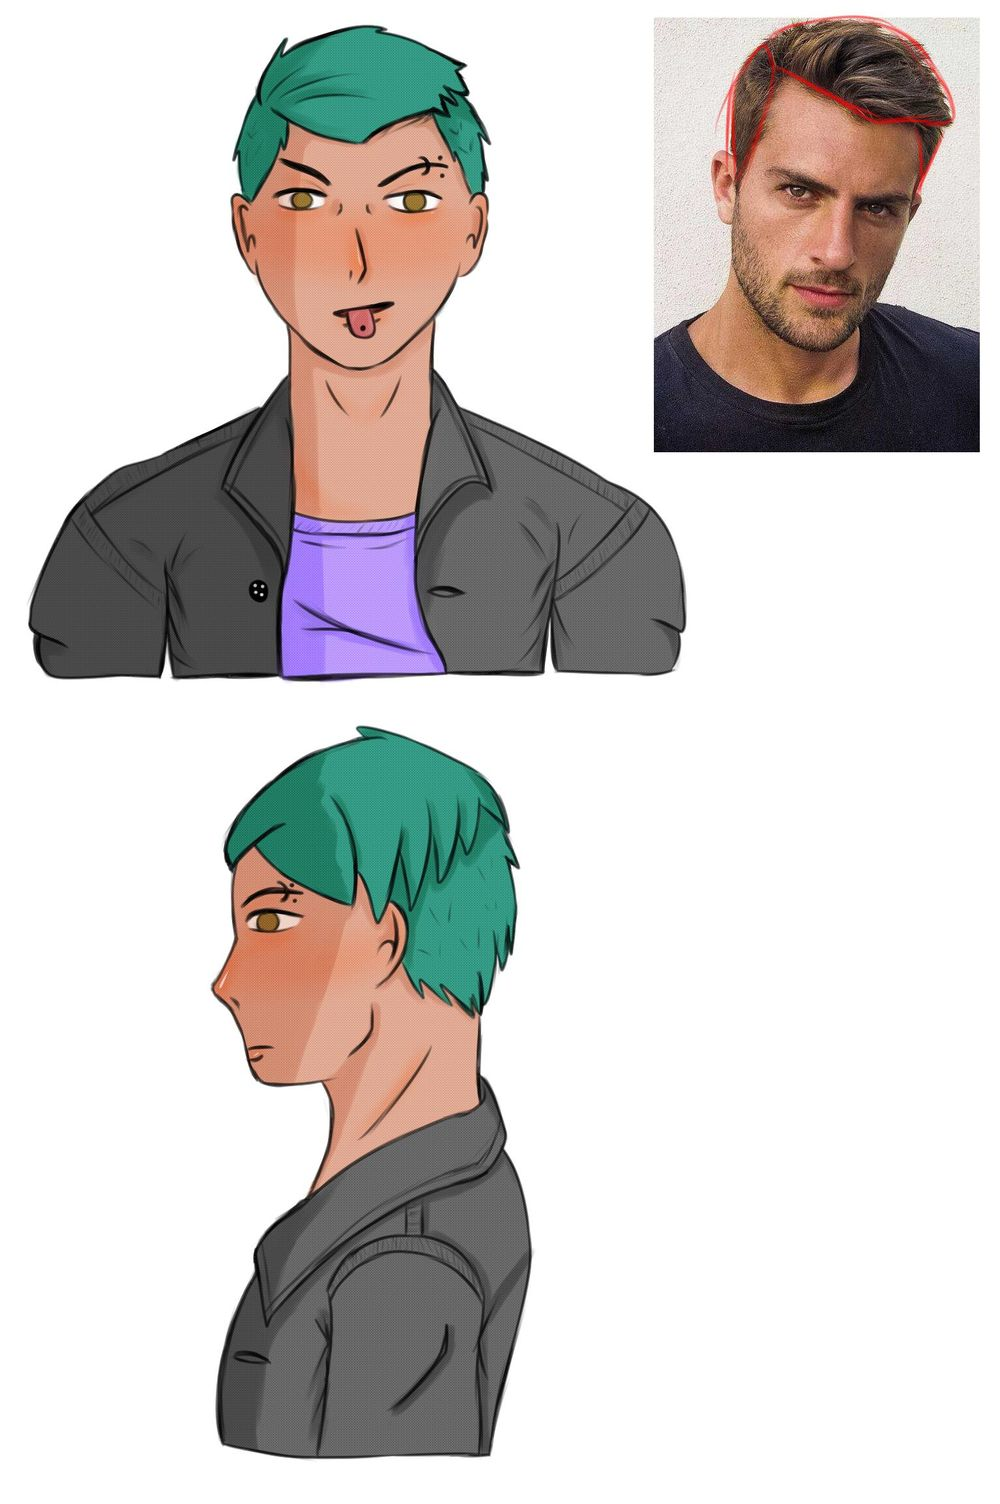 Some Hairstyles - image 3 - student project